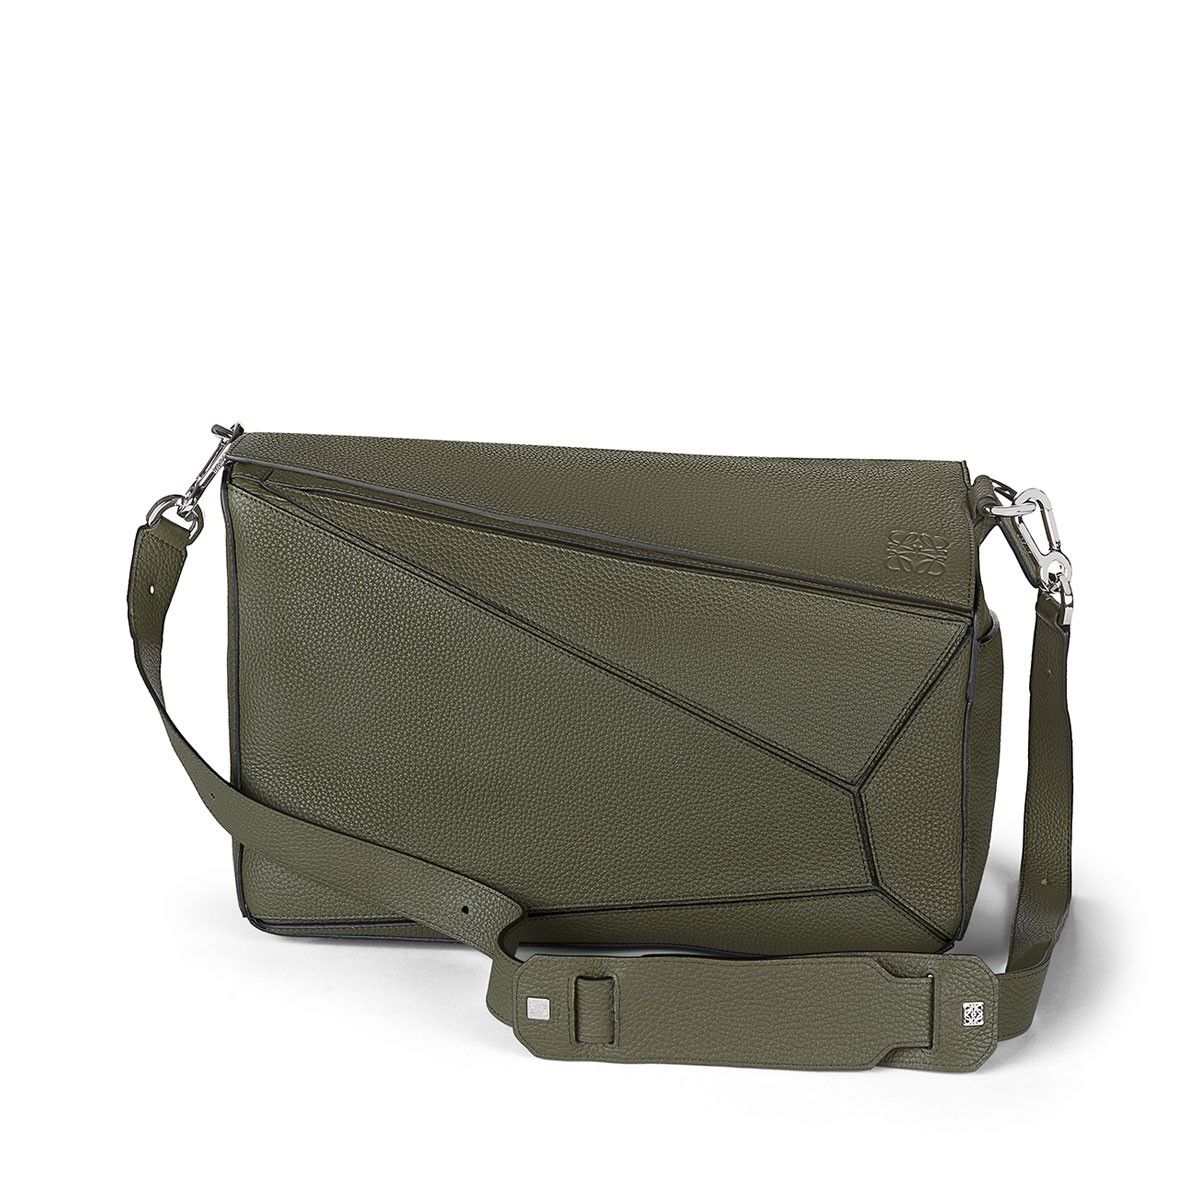 Loewe Bags - PUZZLE EXTRA LARGE BAG khaki green Discover Loewe Bags products…